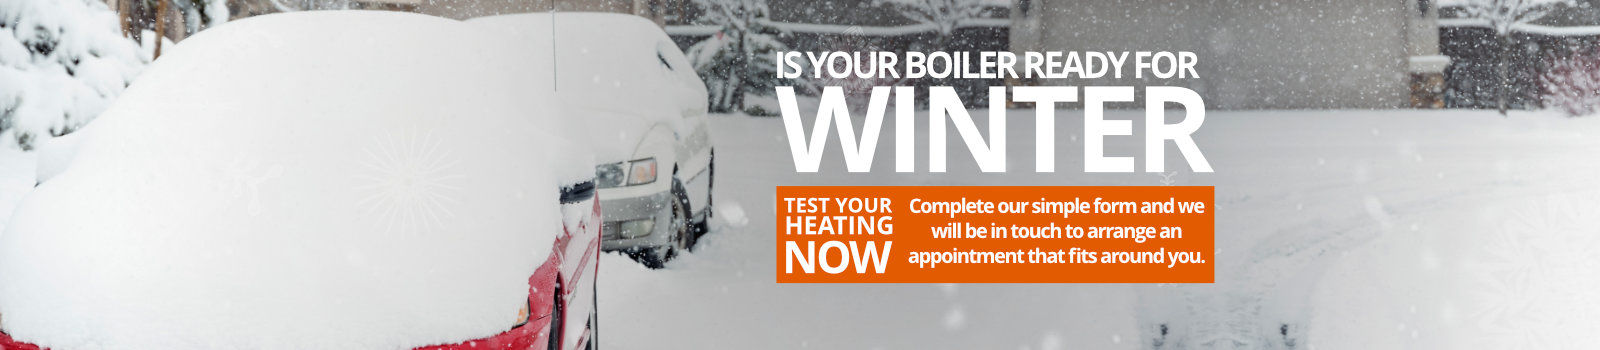 Is your boiler ready for winter